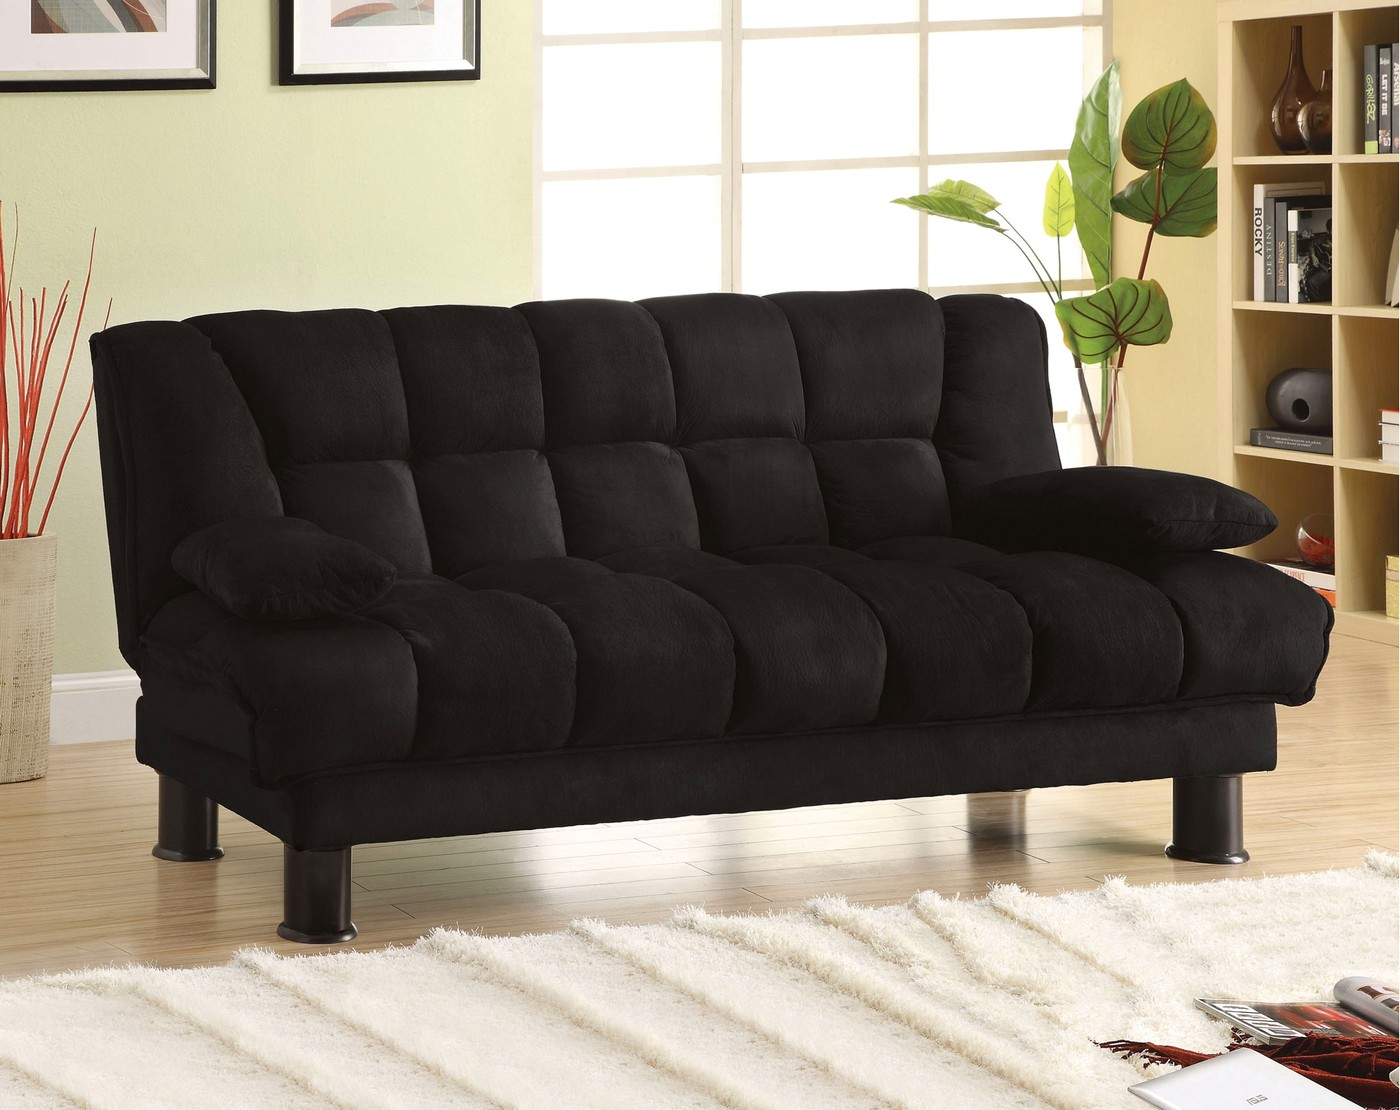 Modern Futon Bonifa Contemporary Black Futon Sofabed With Under-seat